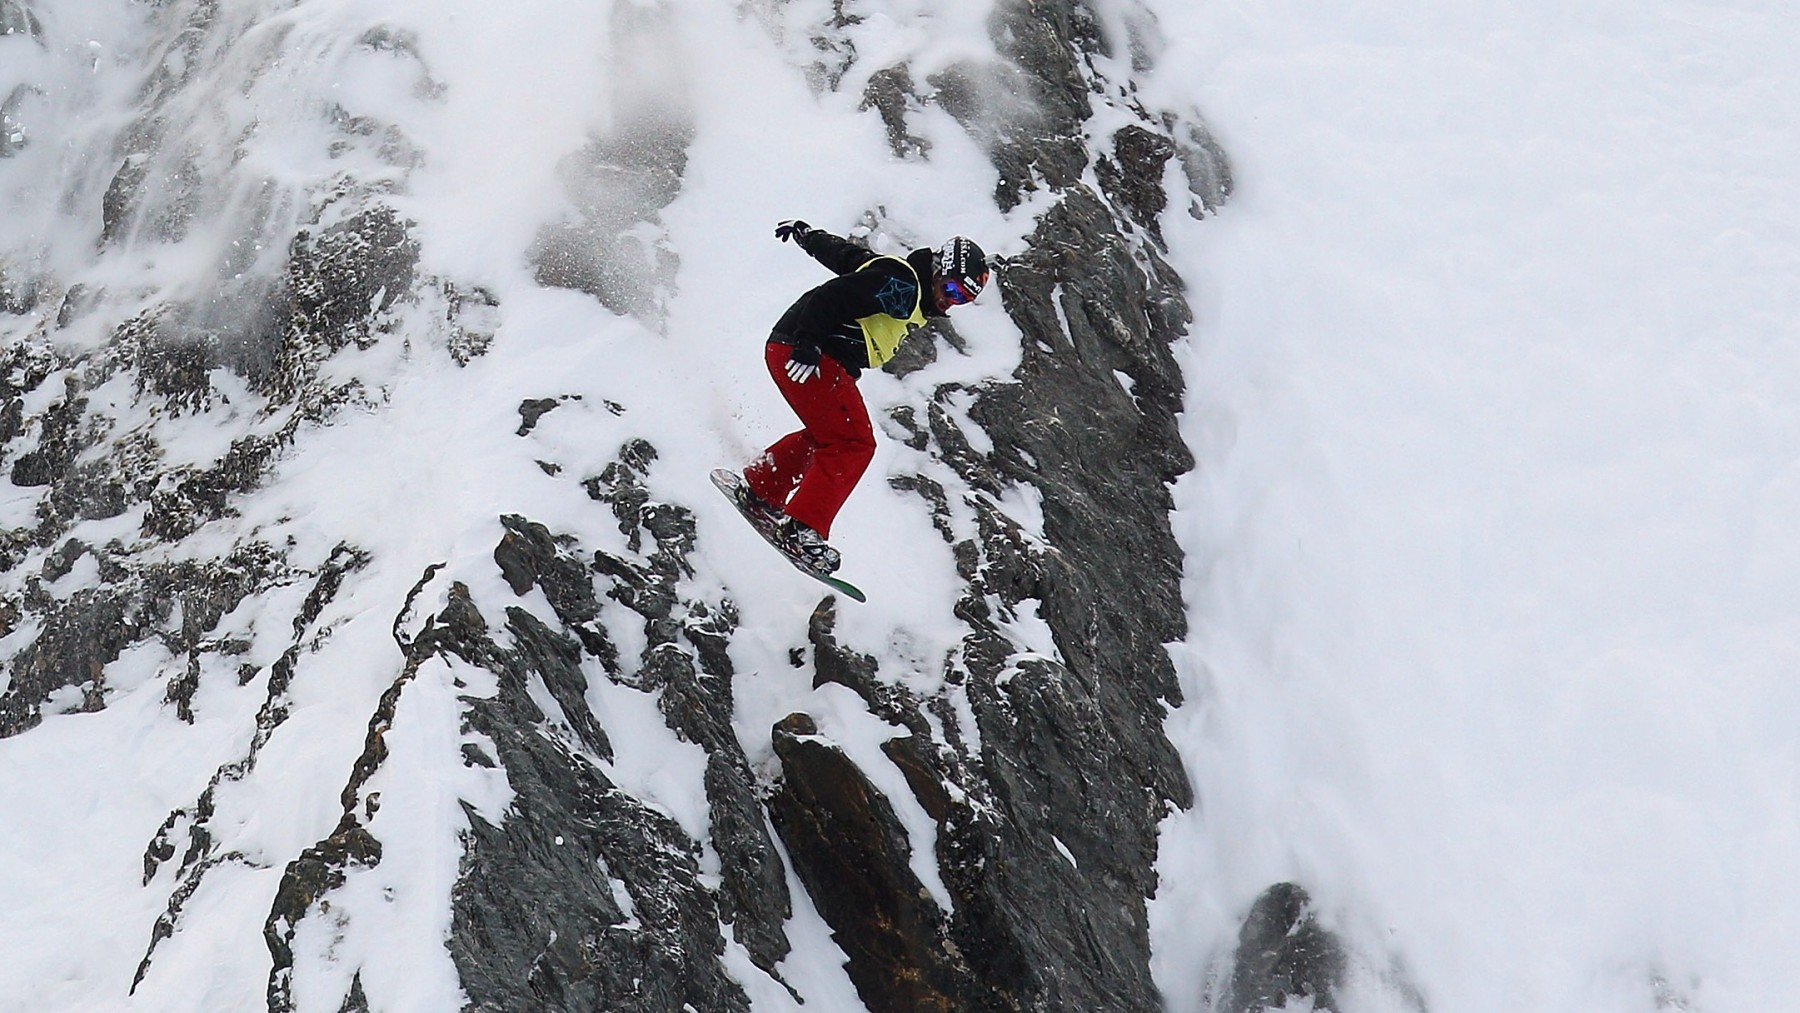 WANAKA, NEW ZEALAND - AUGUST 01:  Mike Basich of the United States launches off a drop during the World Heli Challenge Extreme Day at Mount Albert on Minaret Station on August 1, 2011 in Wanaka, New Zealand.  (Photo by Cameron Spencer/Getty Images)  https://www.youtube.com/watch?v=sadOfmkTtpw